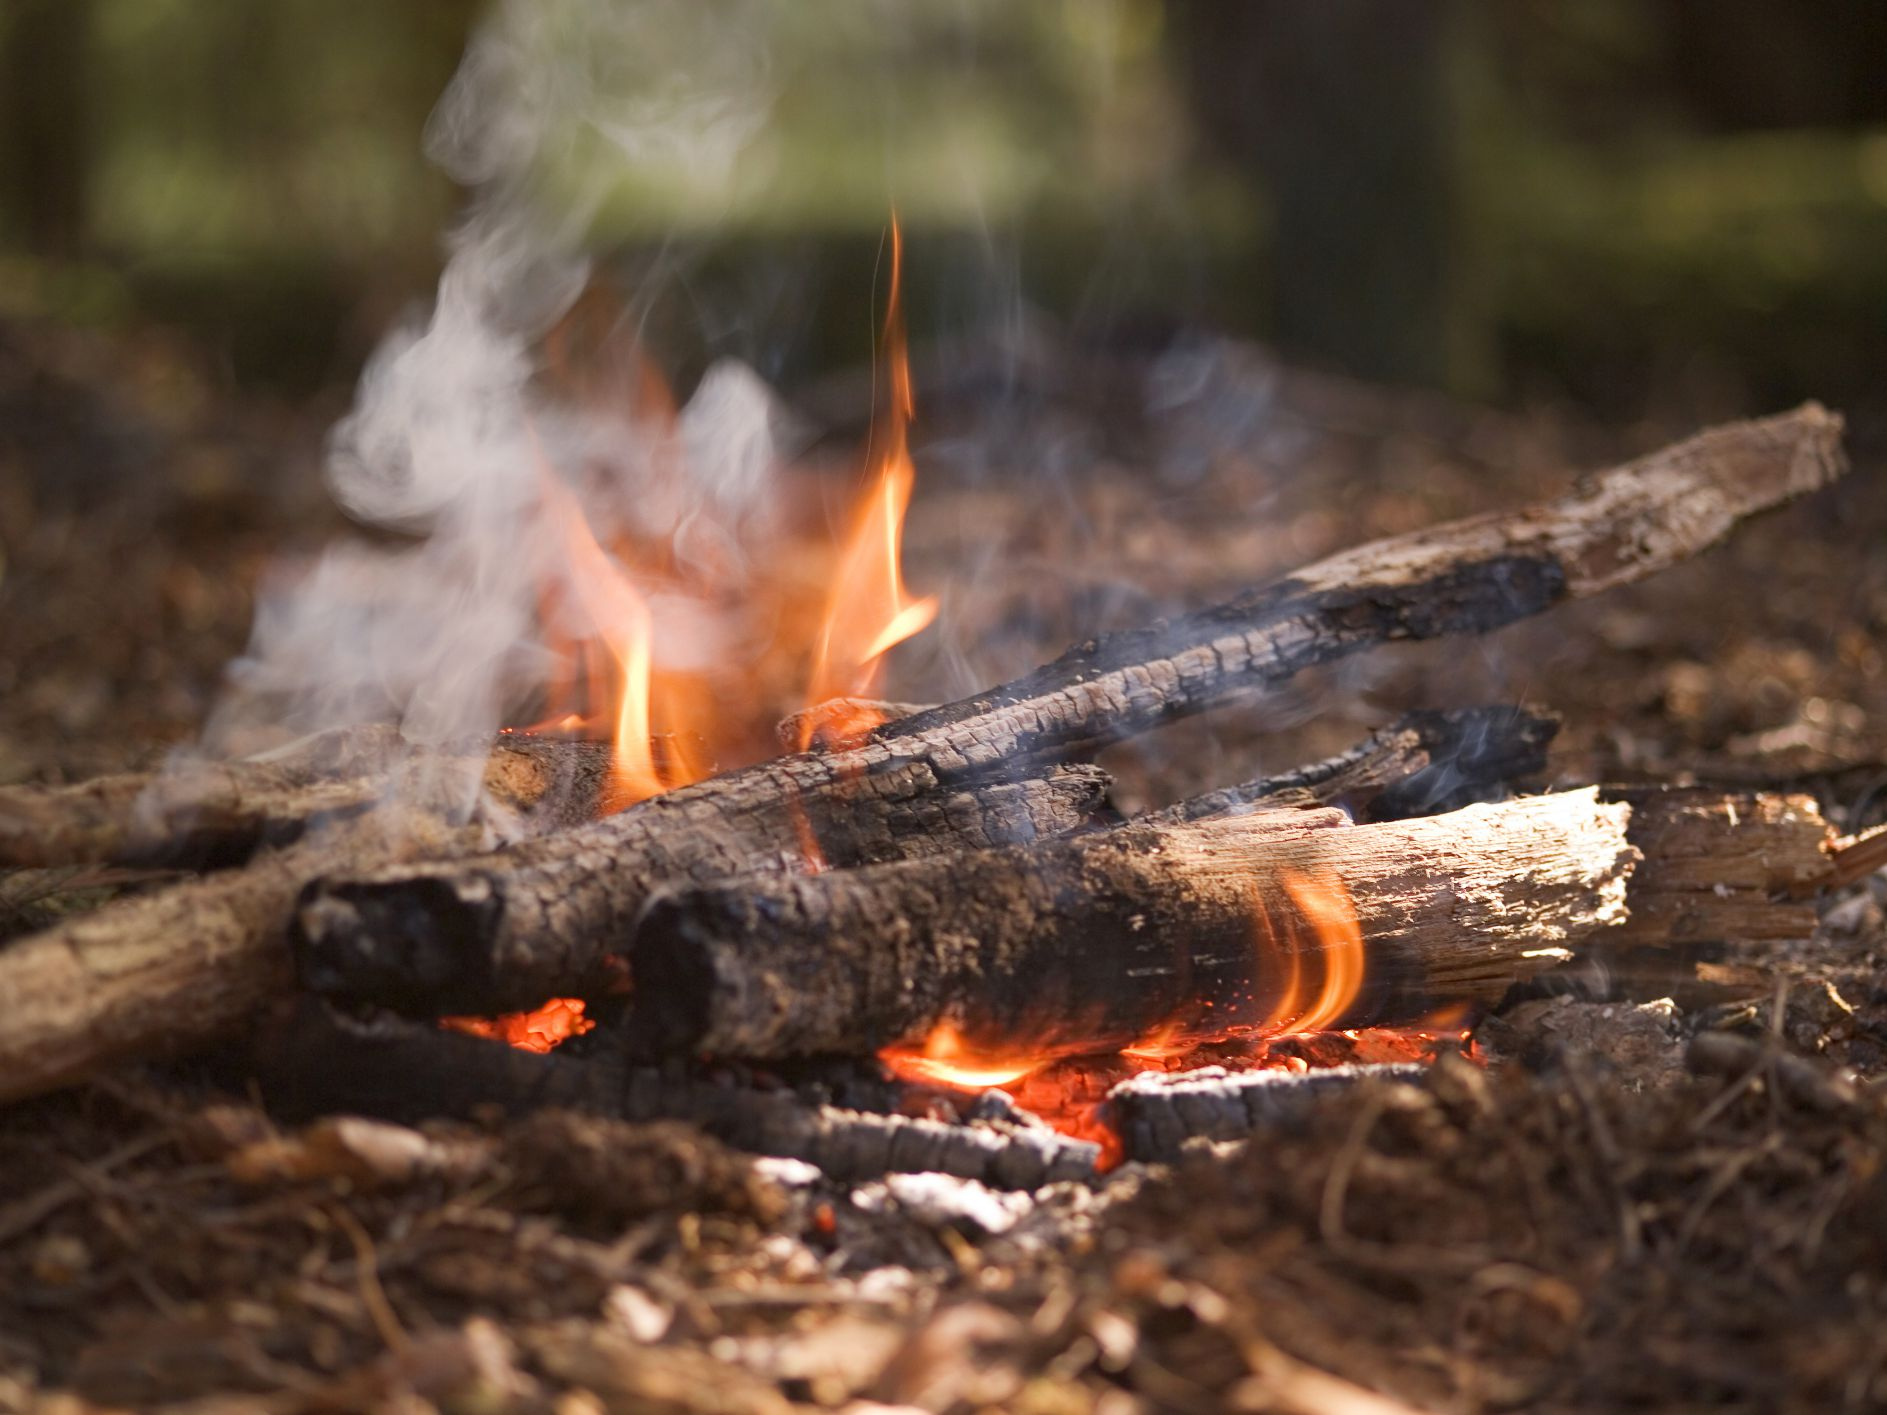 Is Pollution From Campfires a Real Problem?